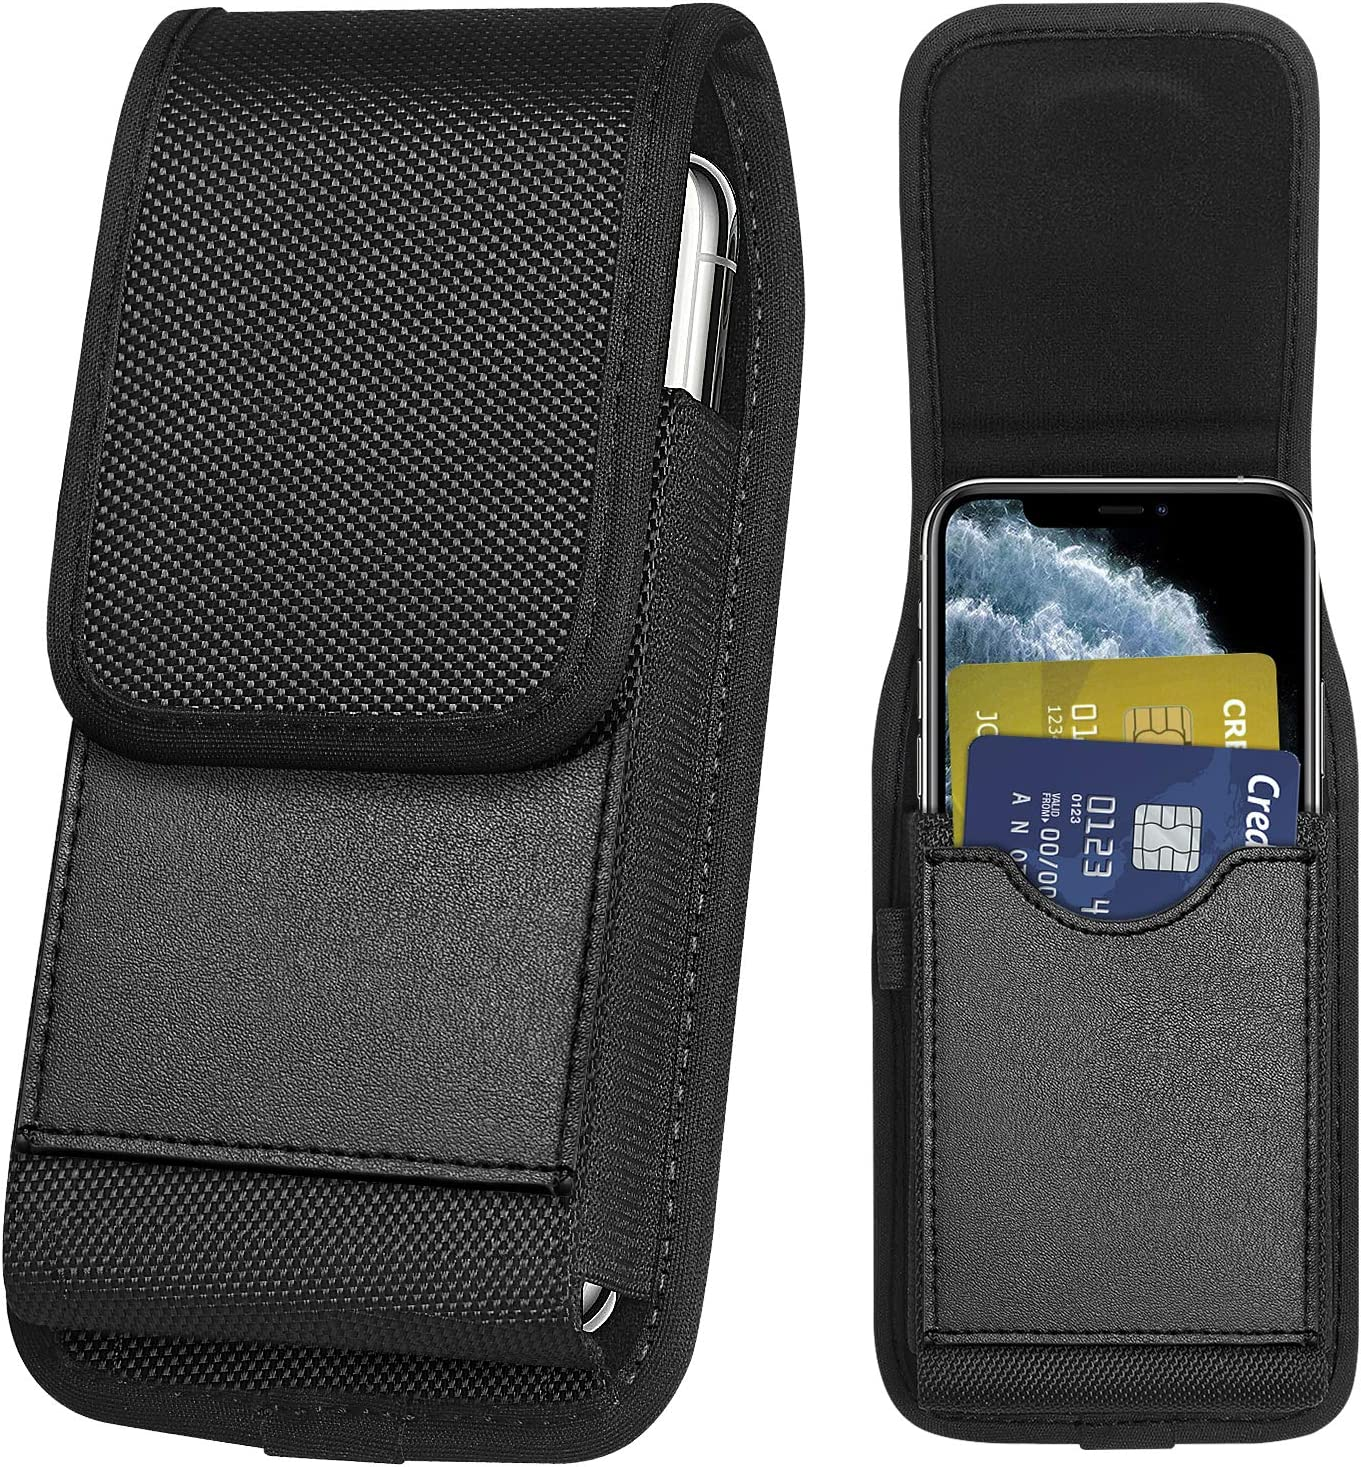 ykooe Vertical Nylon Holster Compatible with iPhone SE2 2020 7 8 11 Pro XR X Carrying Cell Phone Holster Belt Holder Case Pouch with Card Slot for Samsung Galaxy A01 A51 S20 S10 S9 S10e A20 Moto